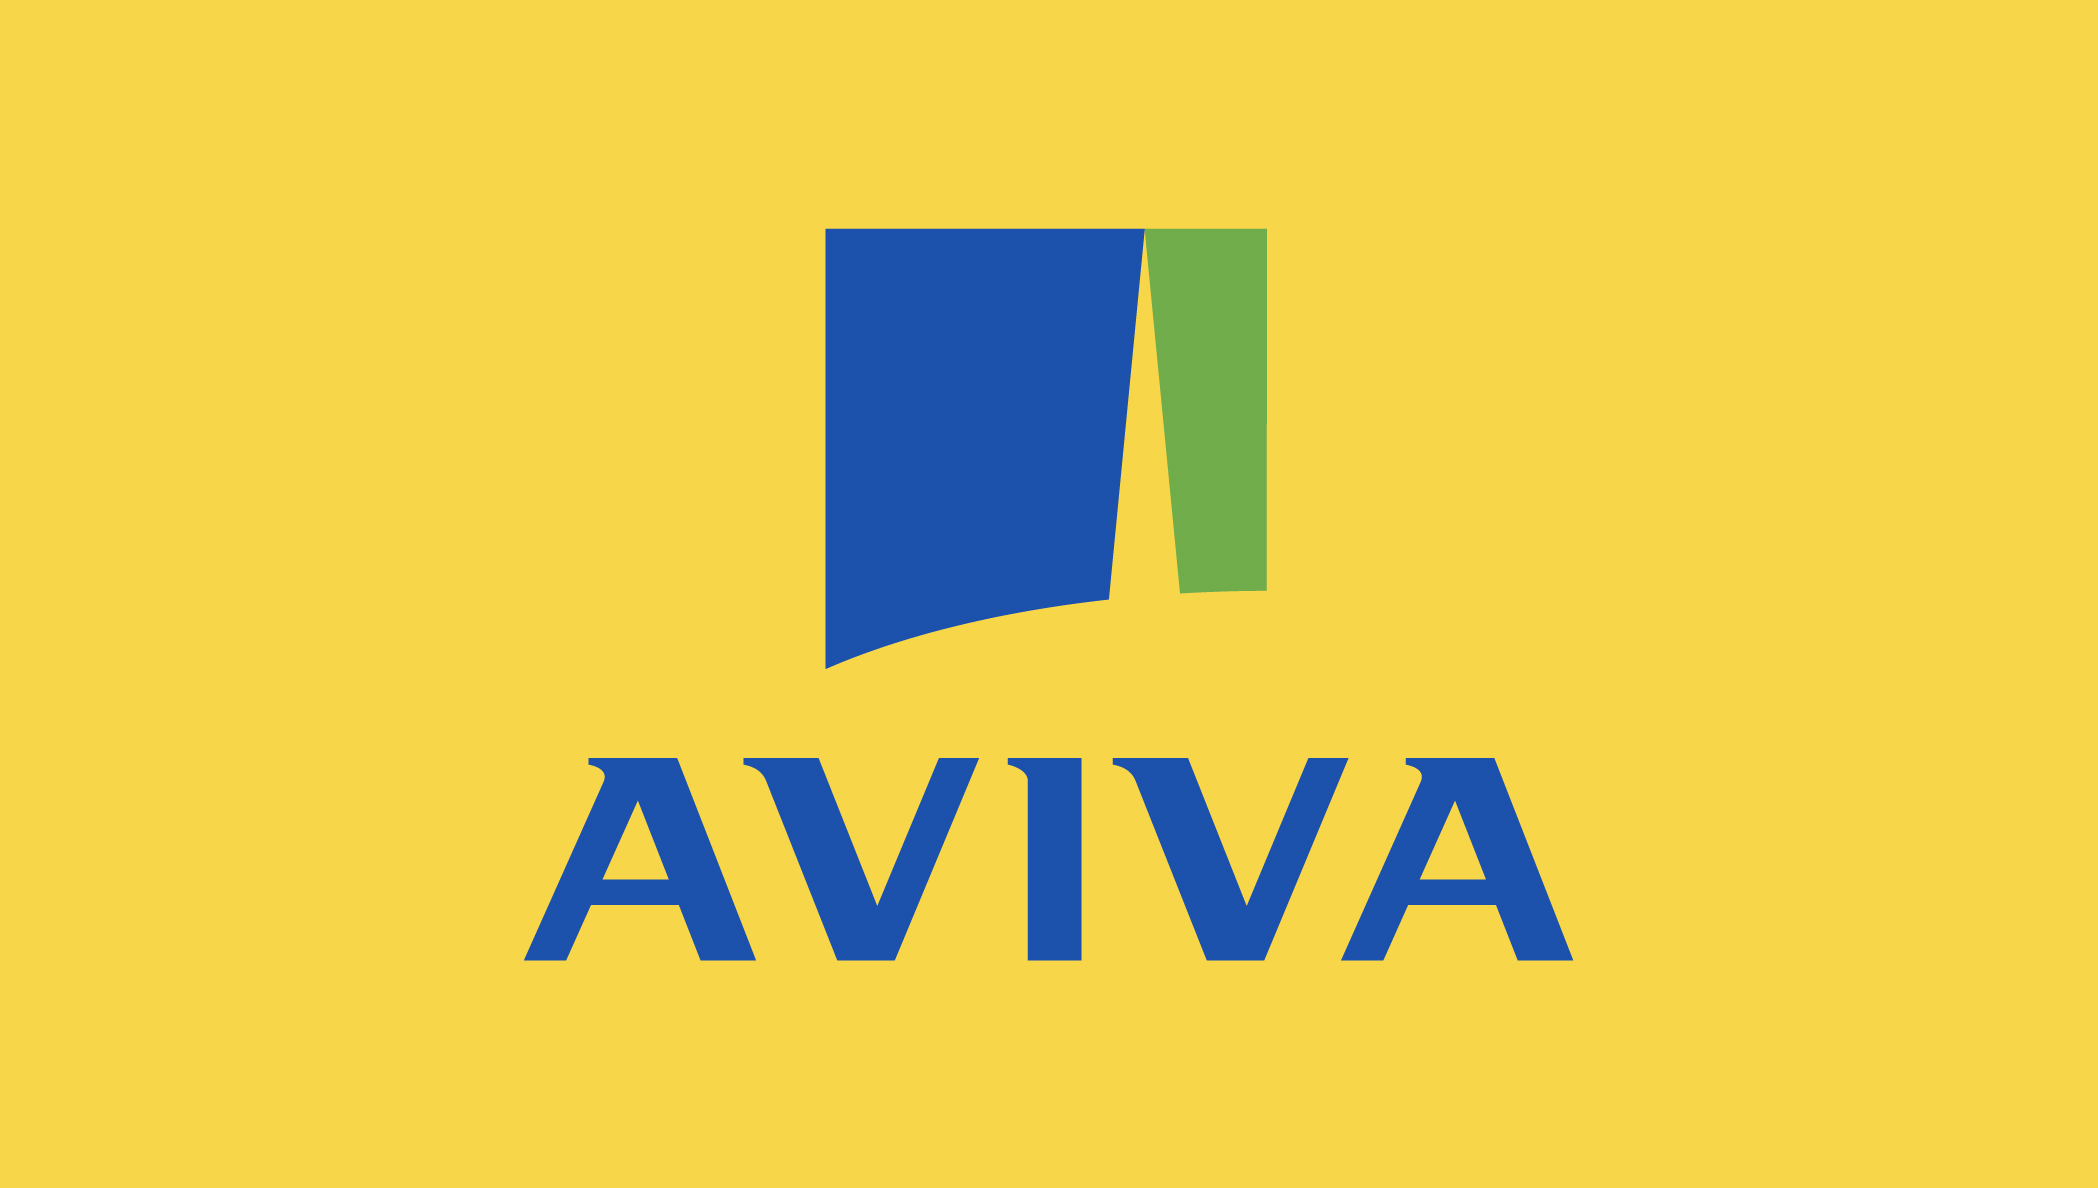 Image of the Aviva logo on a yellow background